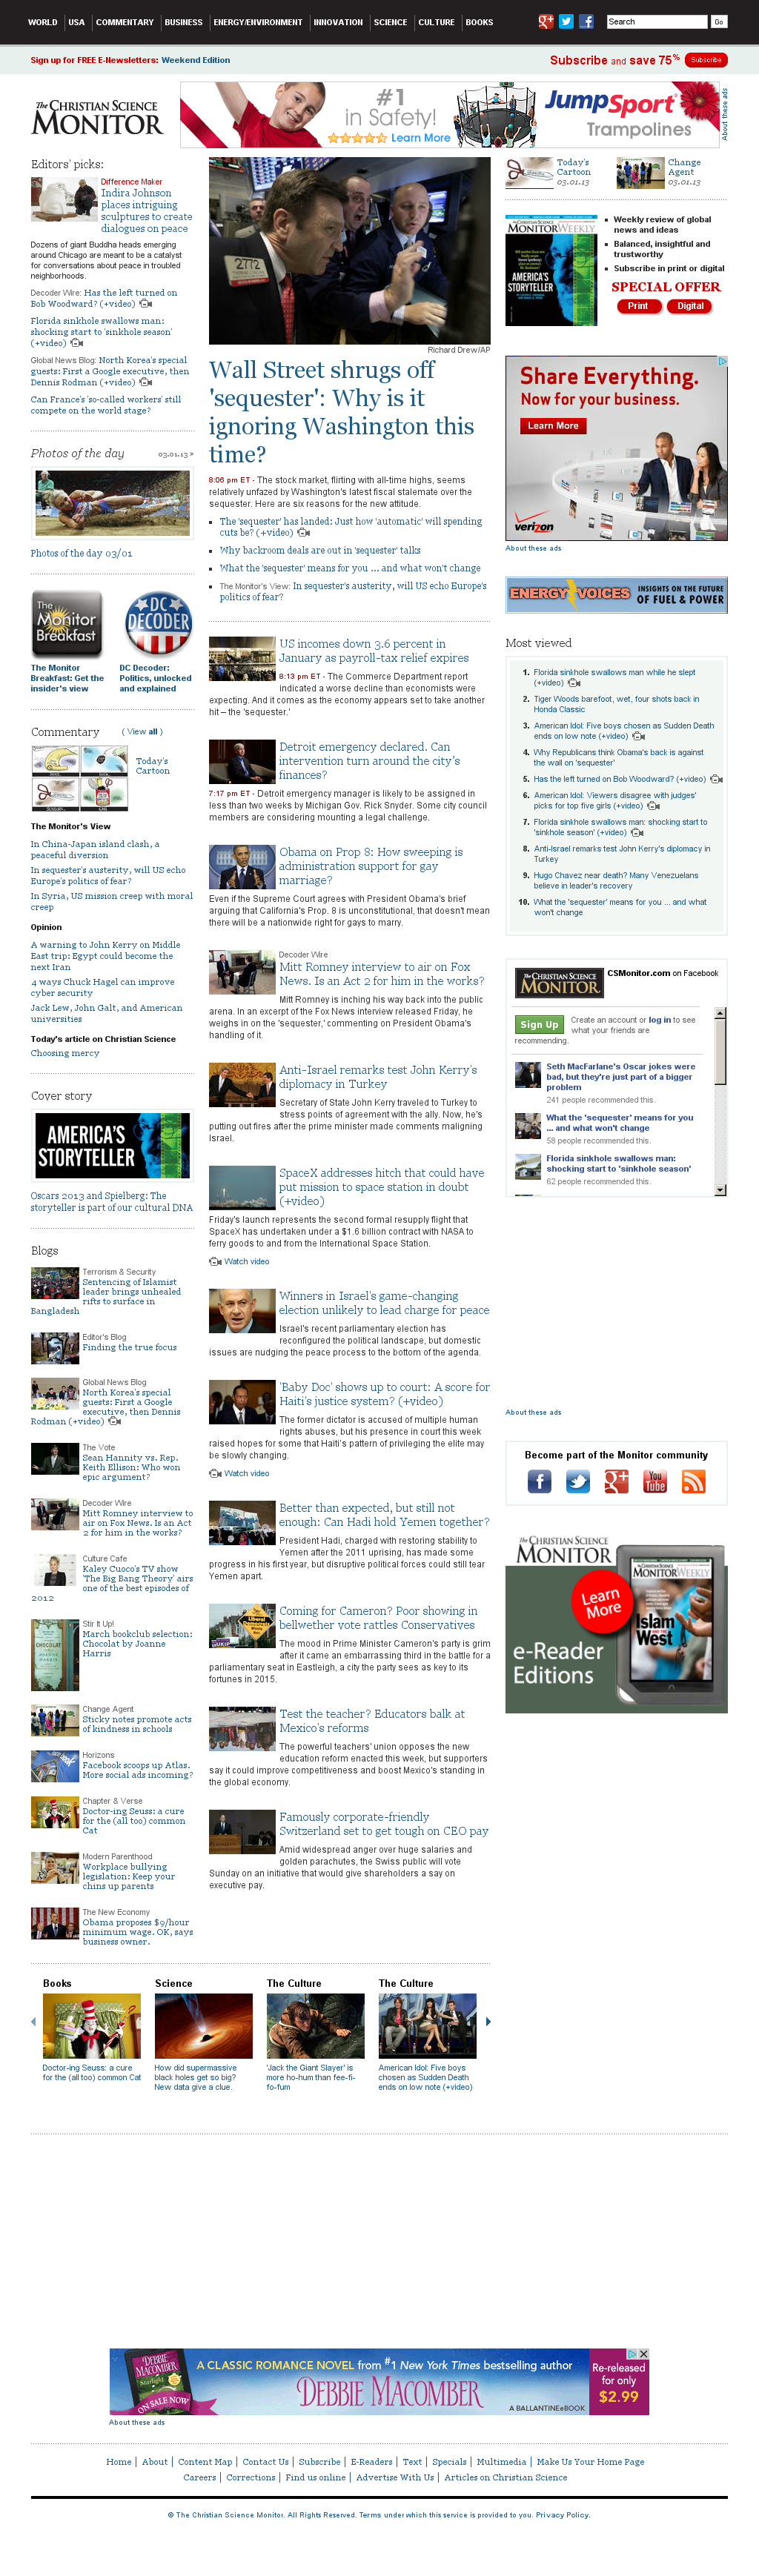 The Christian Science Monitor at Saturday March 2, 2013, 2:03 a.m. UTC